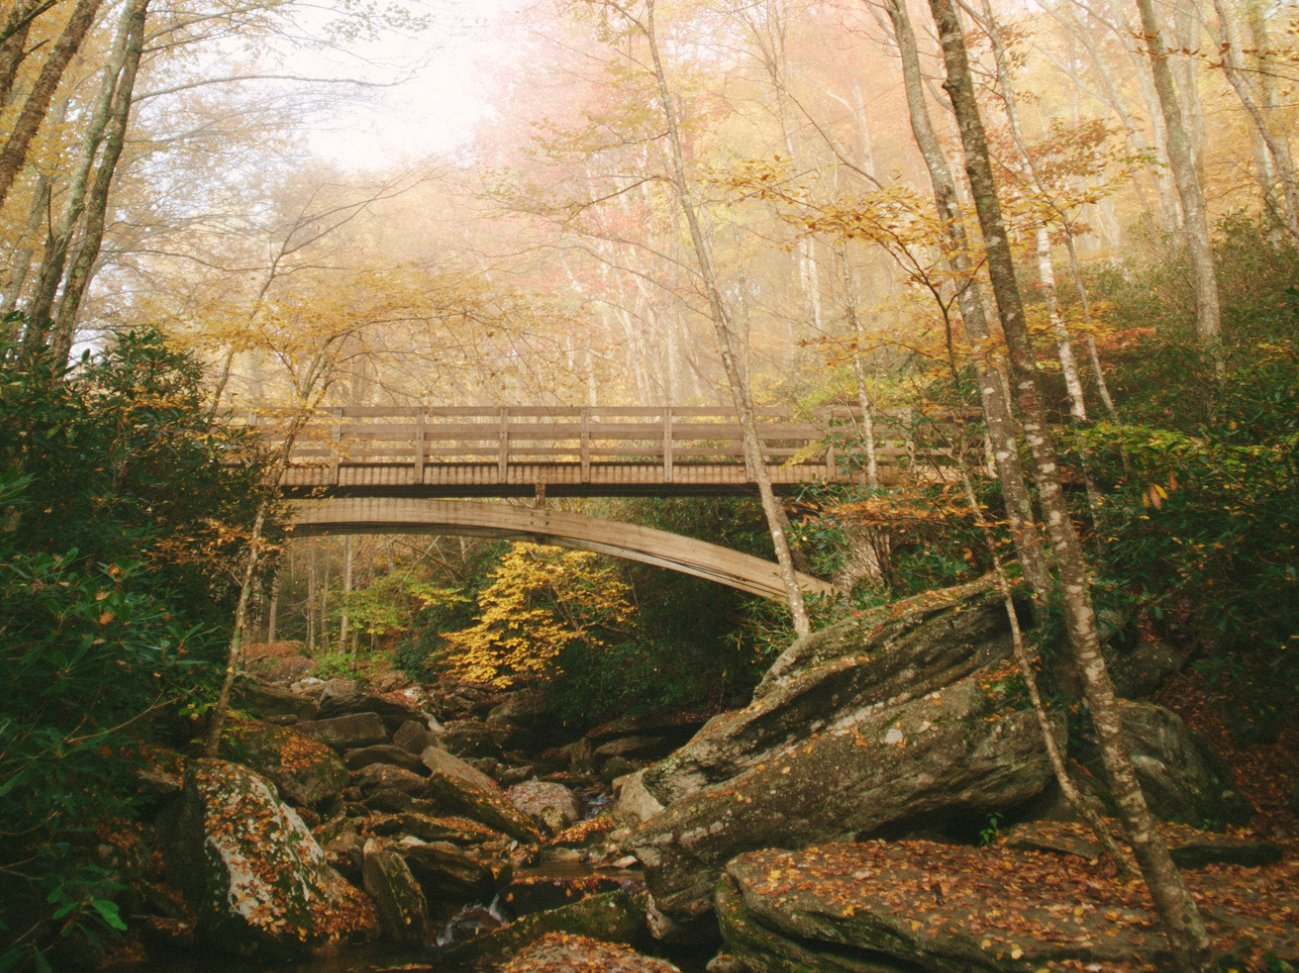 Bridge Over Boone Fork | Photo © Adam Collins